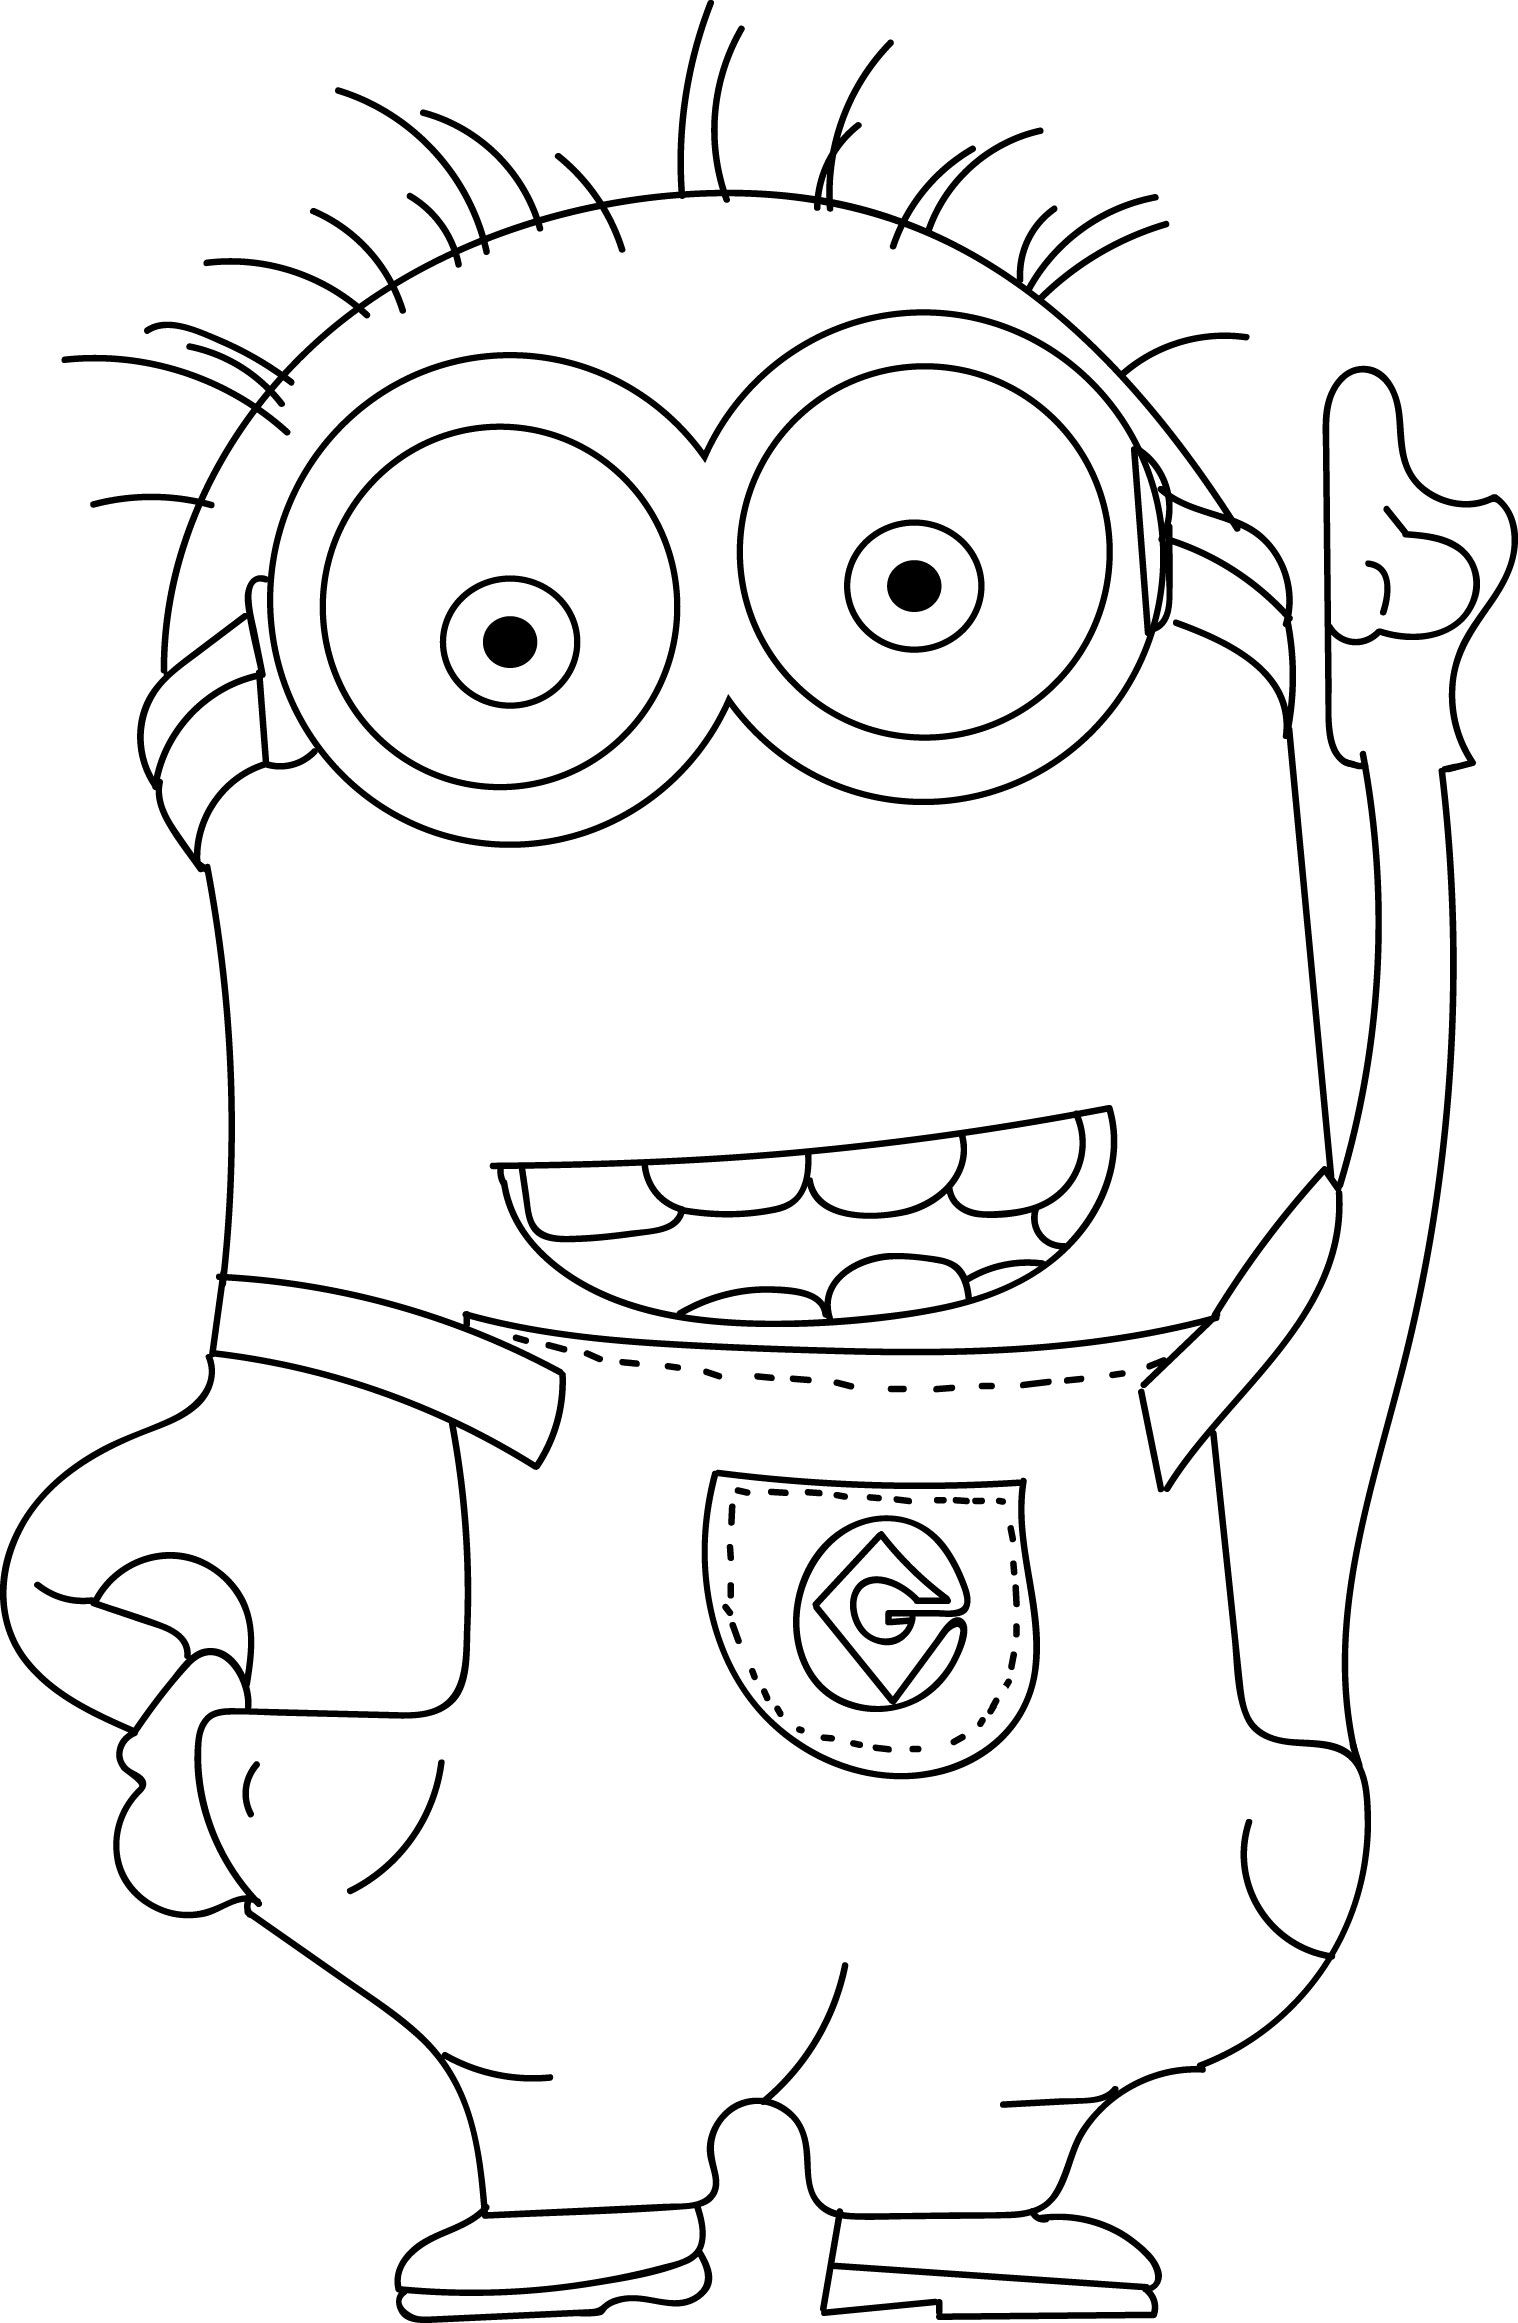 minion pictures to print to print minion coloring pages from despicable me for free to minion print pictures